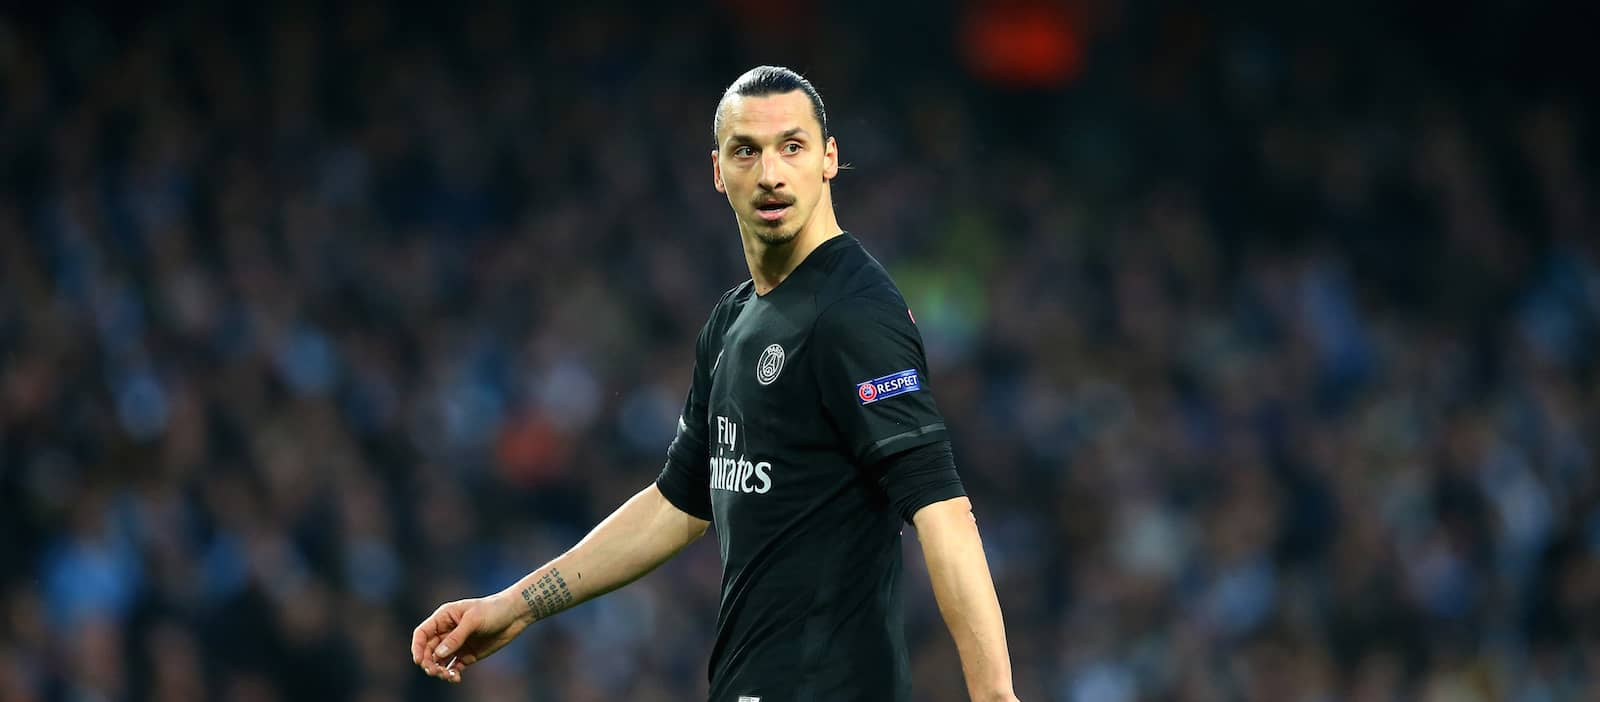 LIVE: Man United news, transfers and gossip – Ibrahimovic says future move will be revealed soon